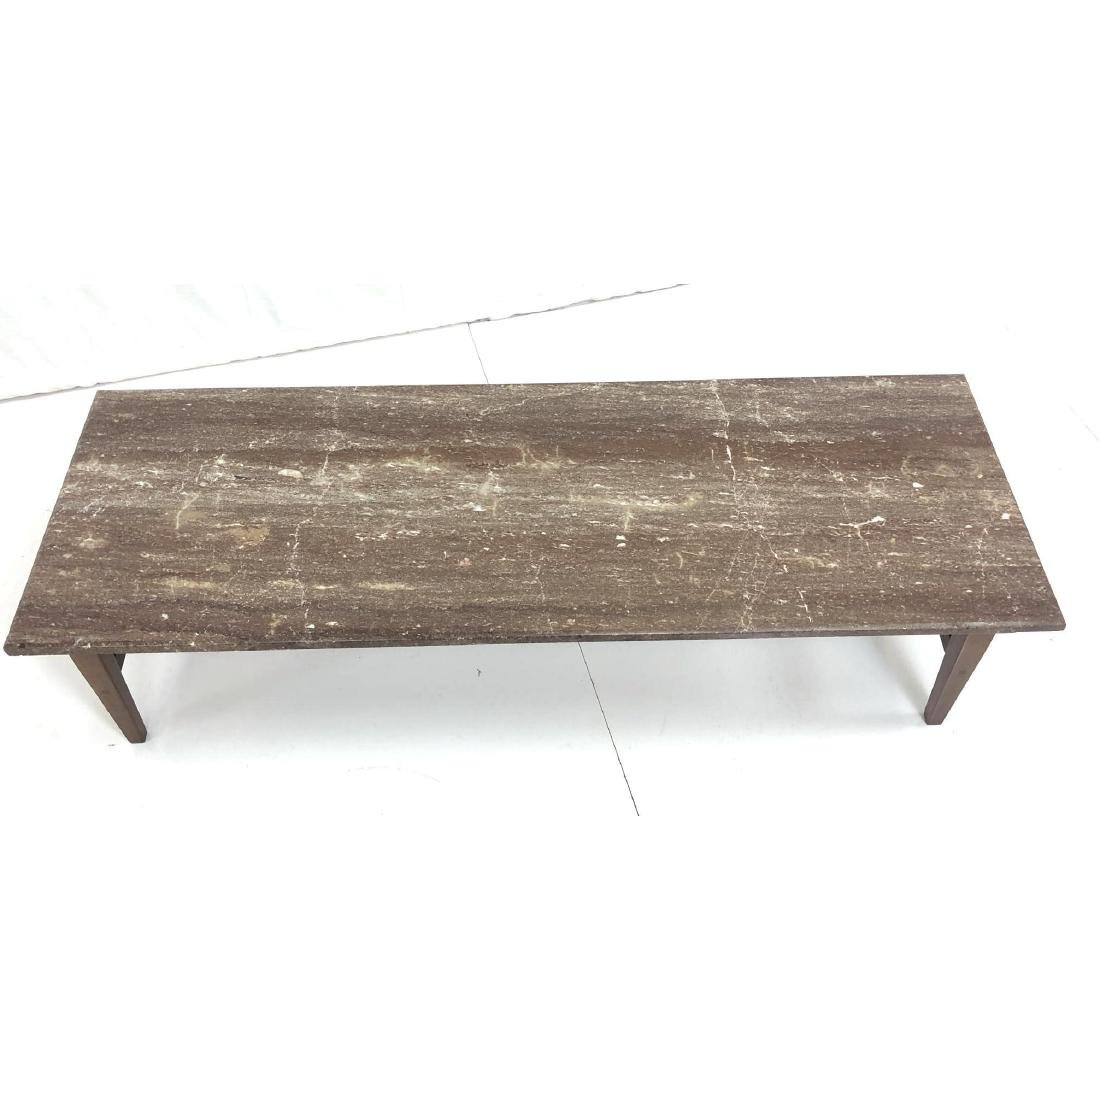 Red Vein Marble Top Cocktail Table. American Mode - 4